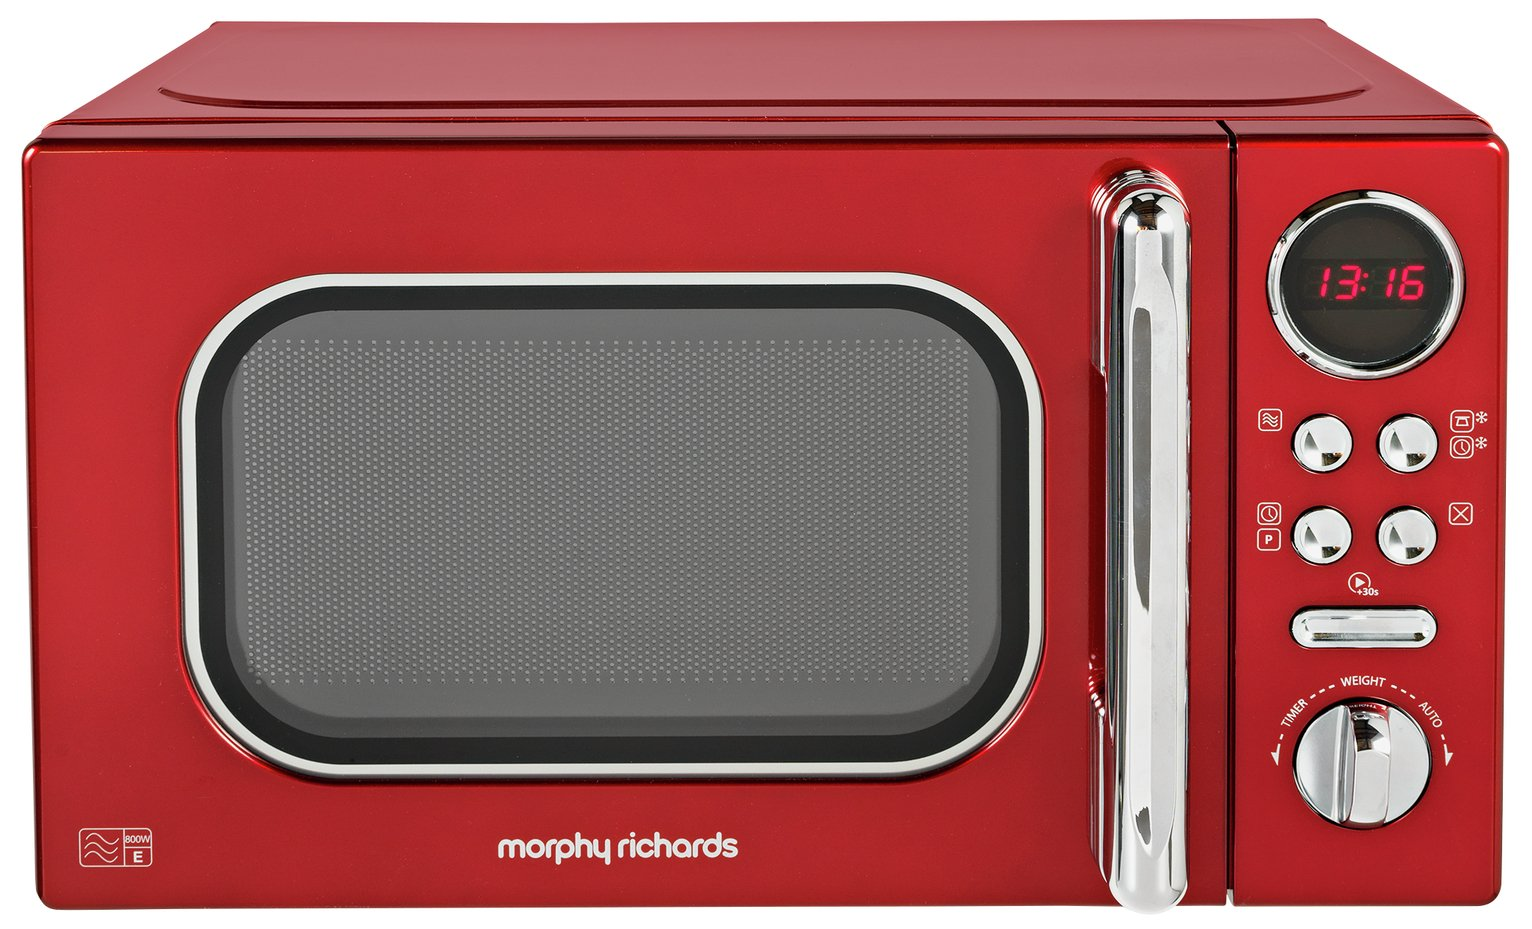 morphy-richards-accents-800w-standard-microwave-511502-red